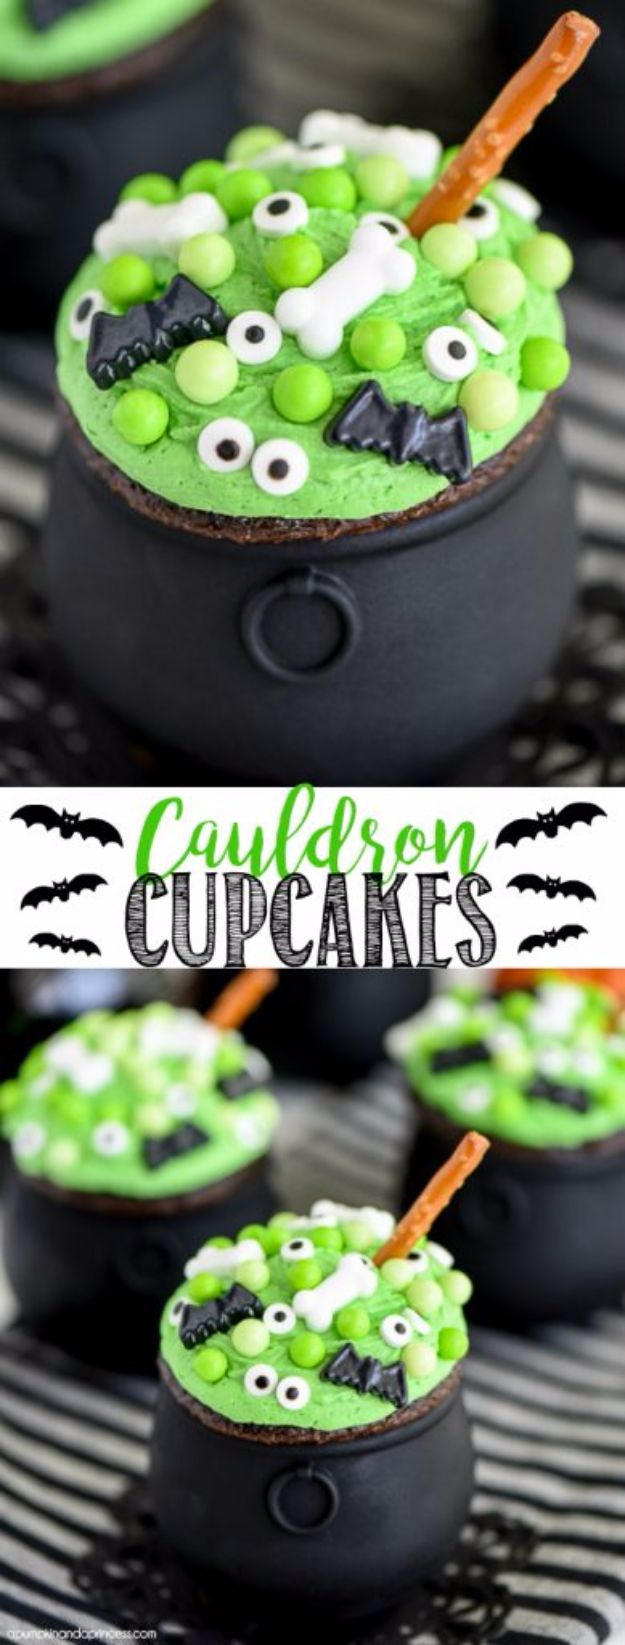 Best Halloween Party Snacks - Cauldron Cupcakes - Healthy Ideas for Kids for School, Teens and Adults - Easy and Quick Recipes and Idea for Dips, Chips, Spooky Cookies and Treats - Appetizers and Finger Foods Made With Vegetables, No Candy, Cheap Food, Scary DIY Party Foods With Step by Step Tutorials http://diyjoy.com/halloween-party-snacks